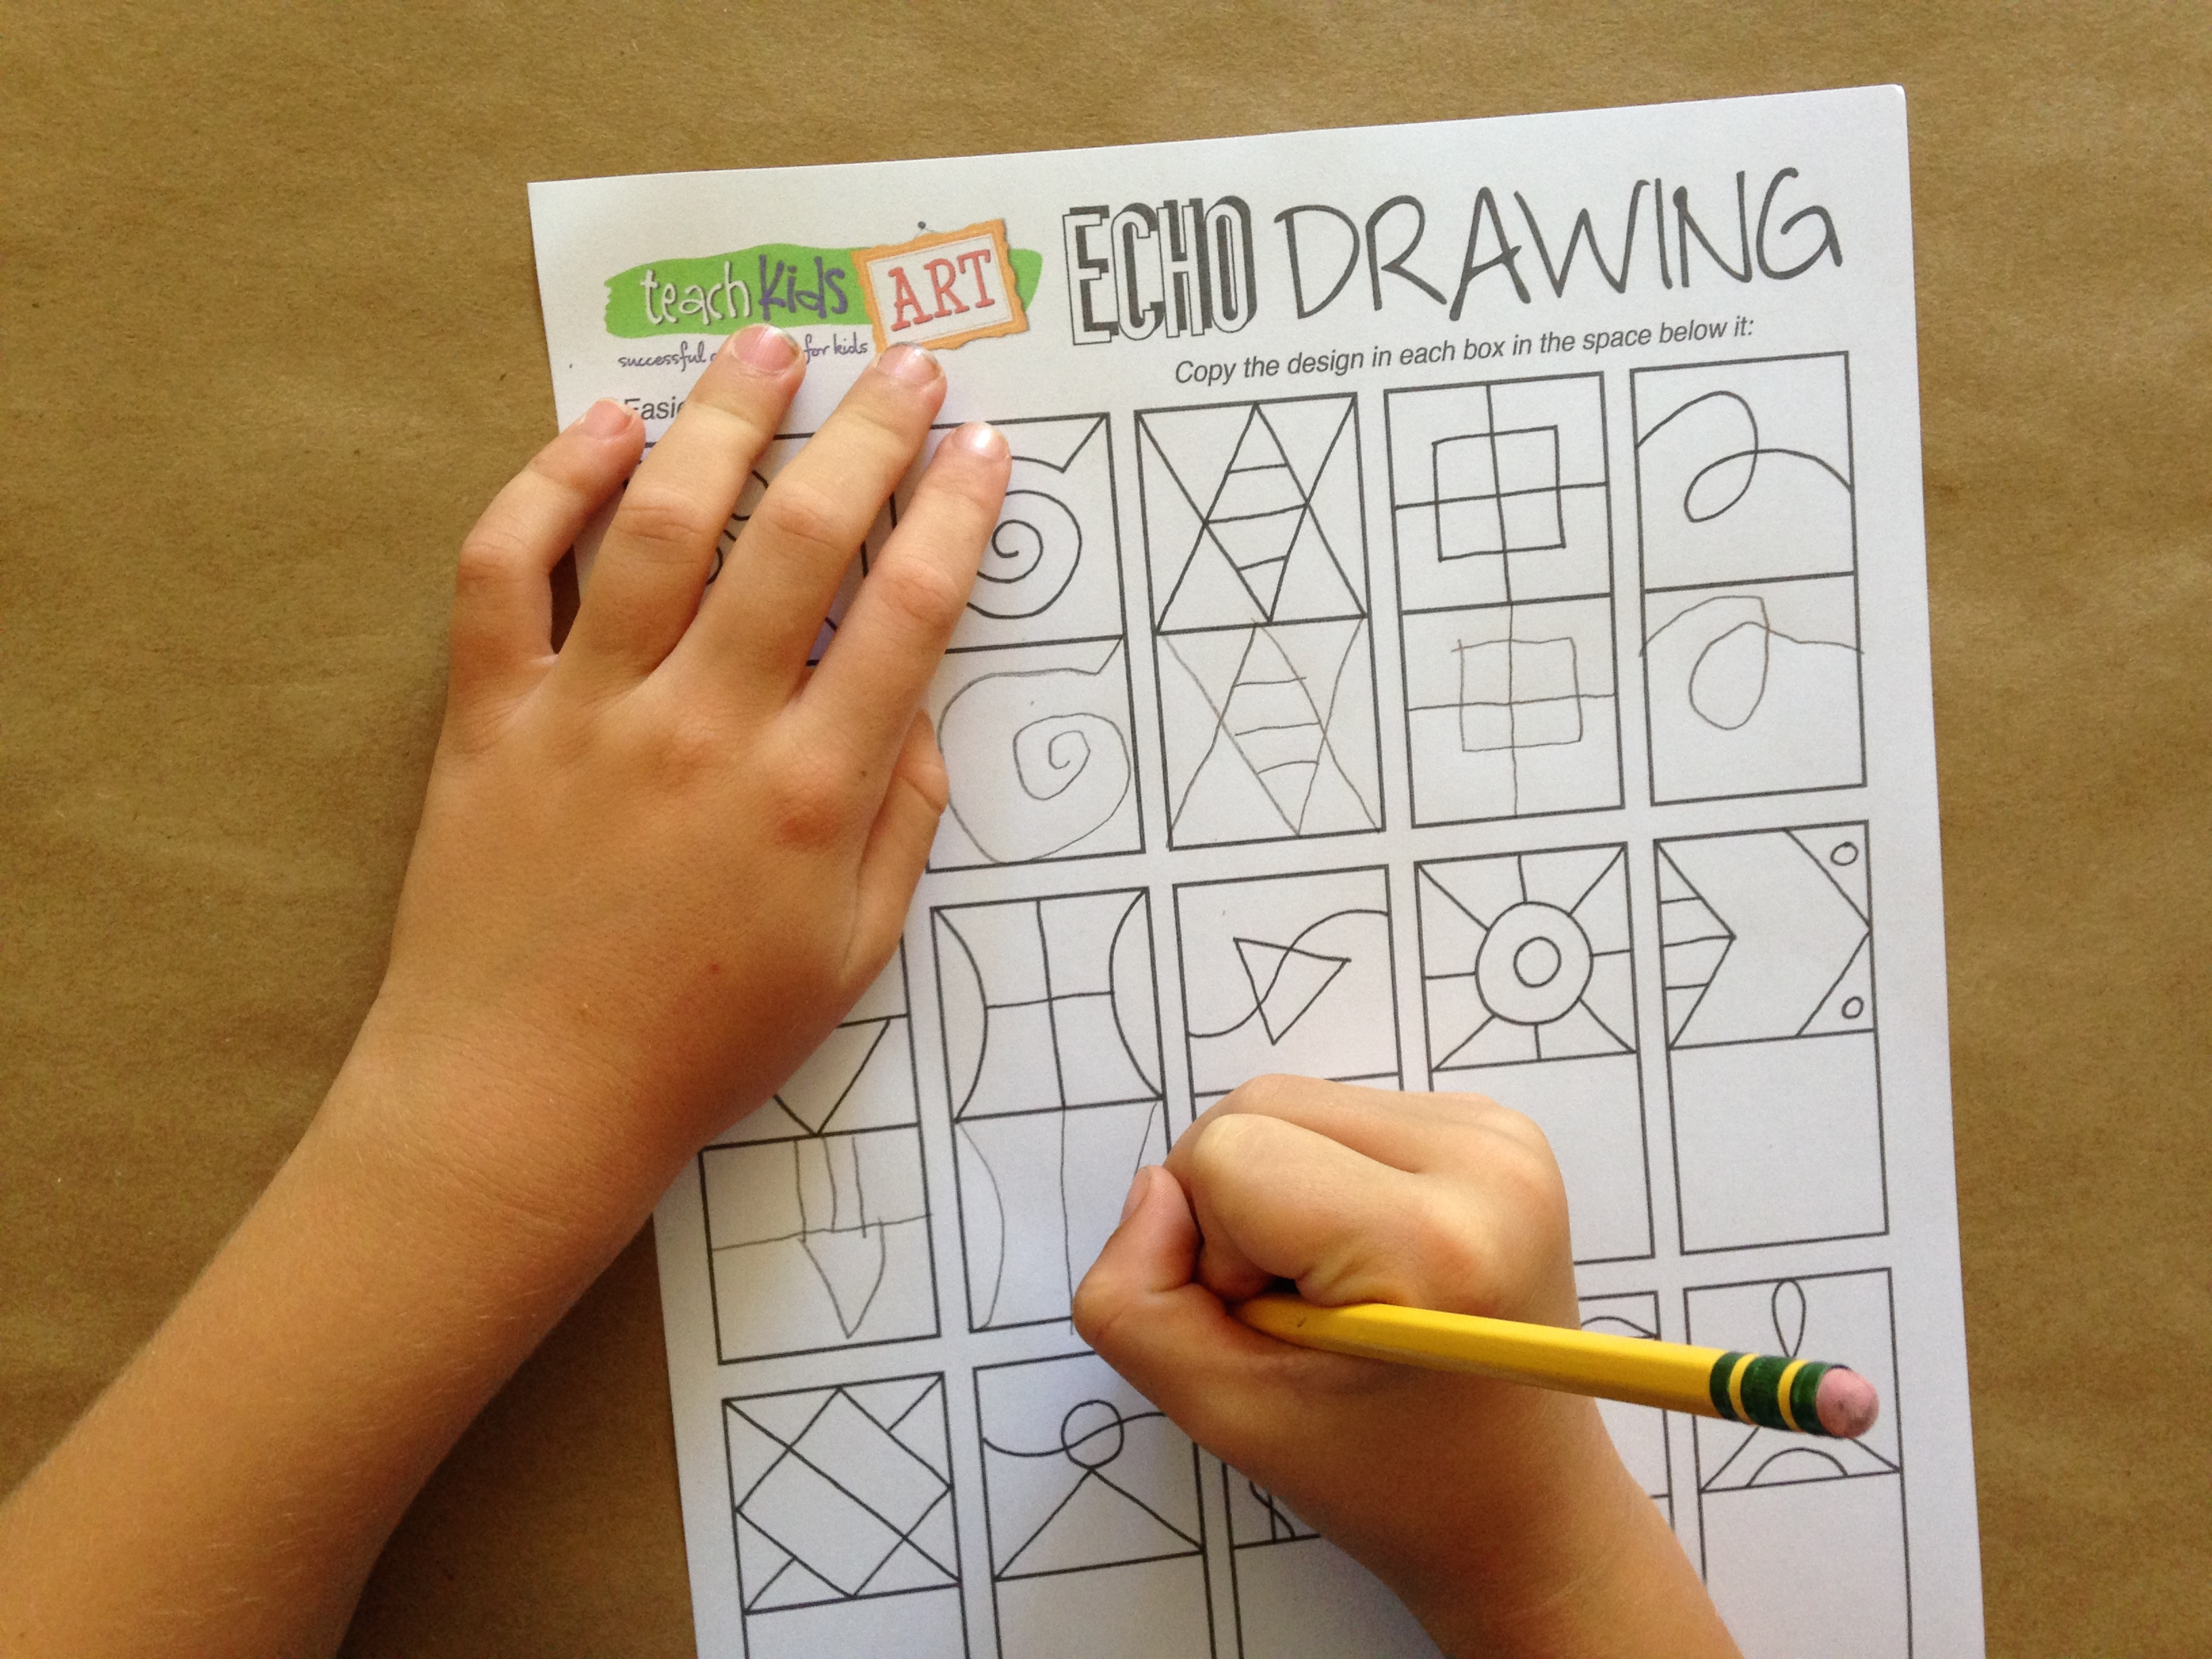 Learning To Draw With Echo Drawing Teachkidsart